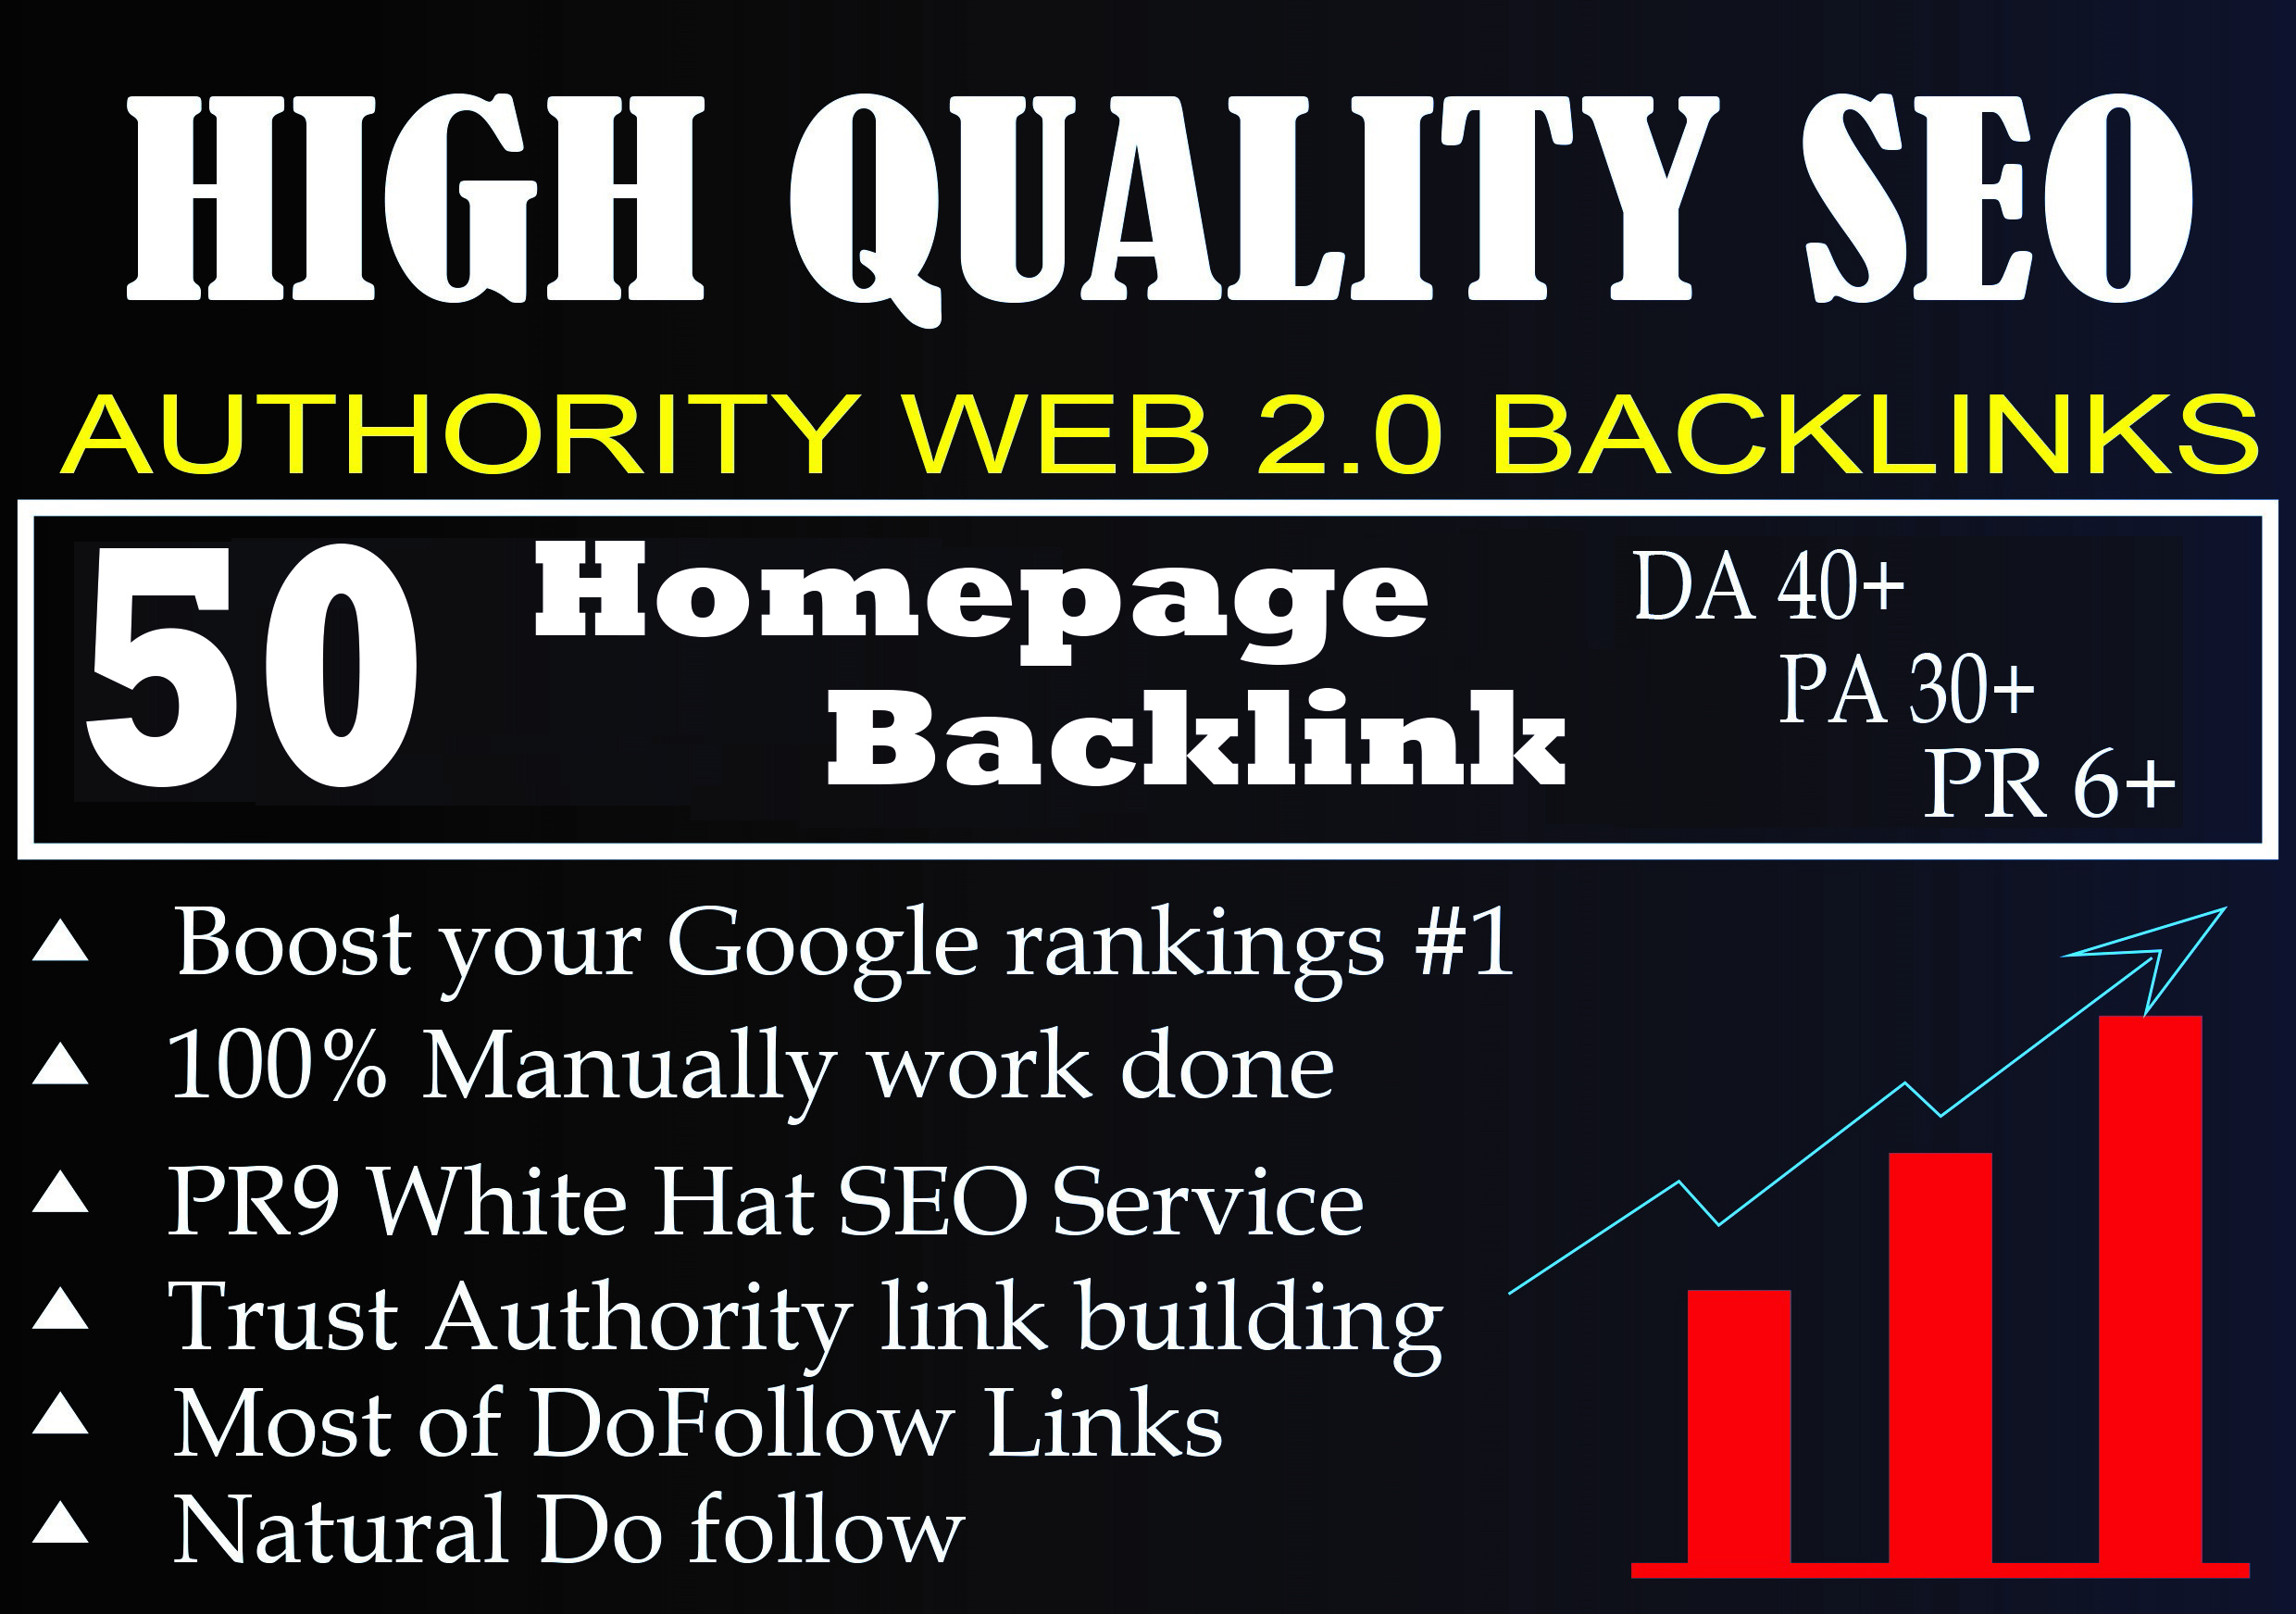 DA 40+ PA 30+ PR 6+ Web2.0 50 homepage Backlink in 100 dofollow in unique site